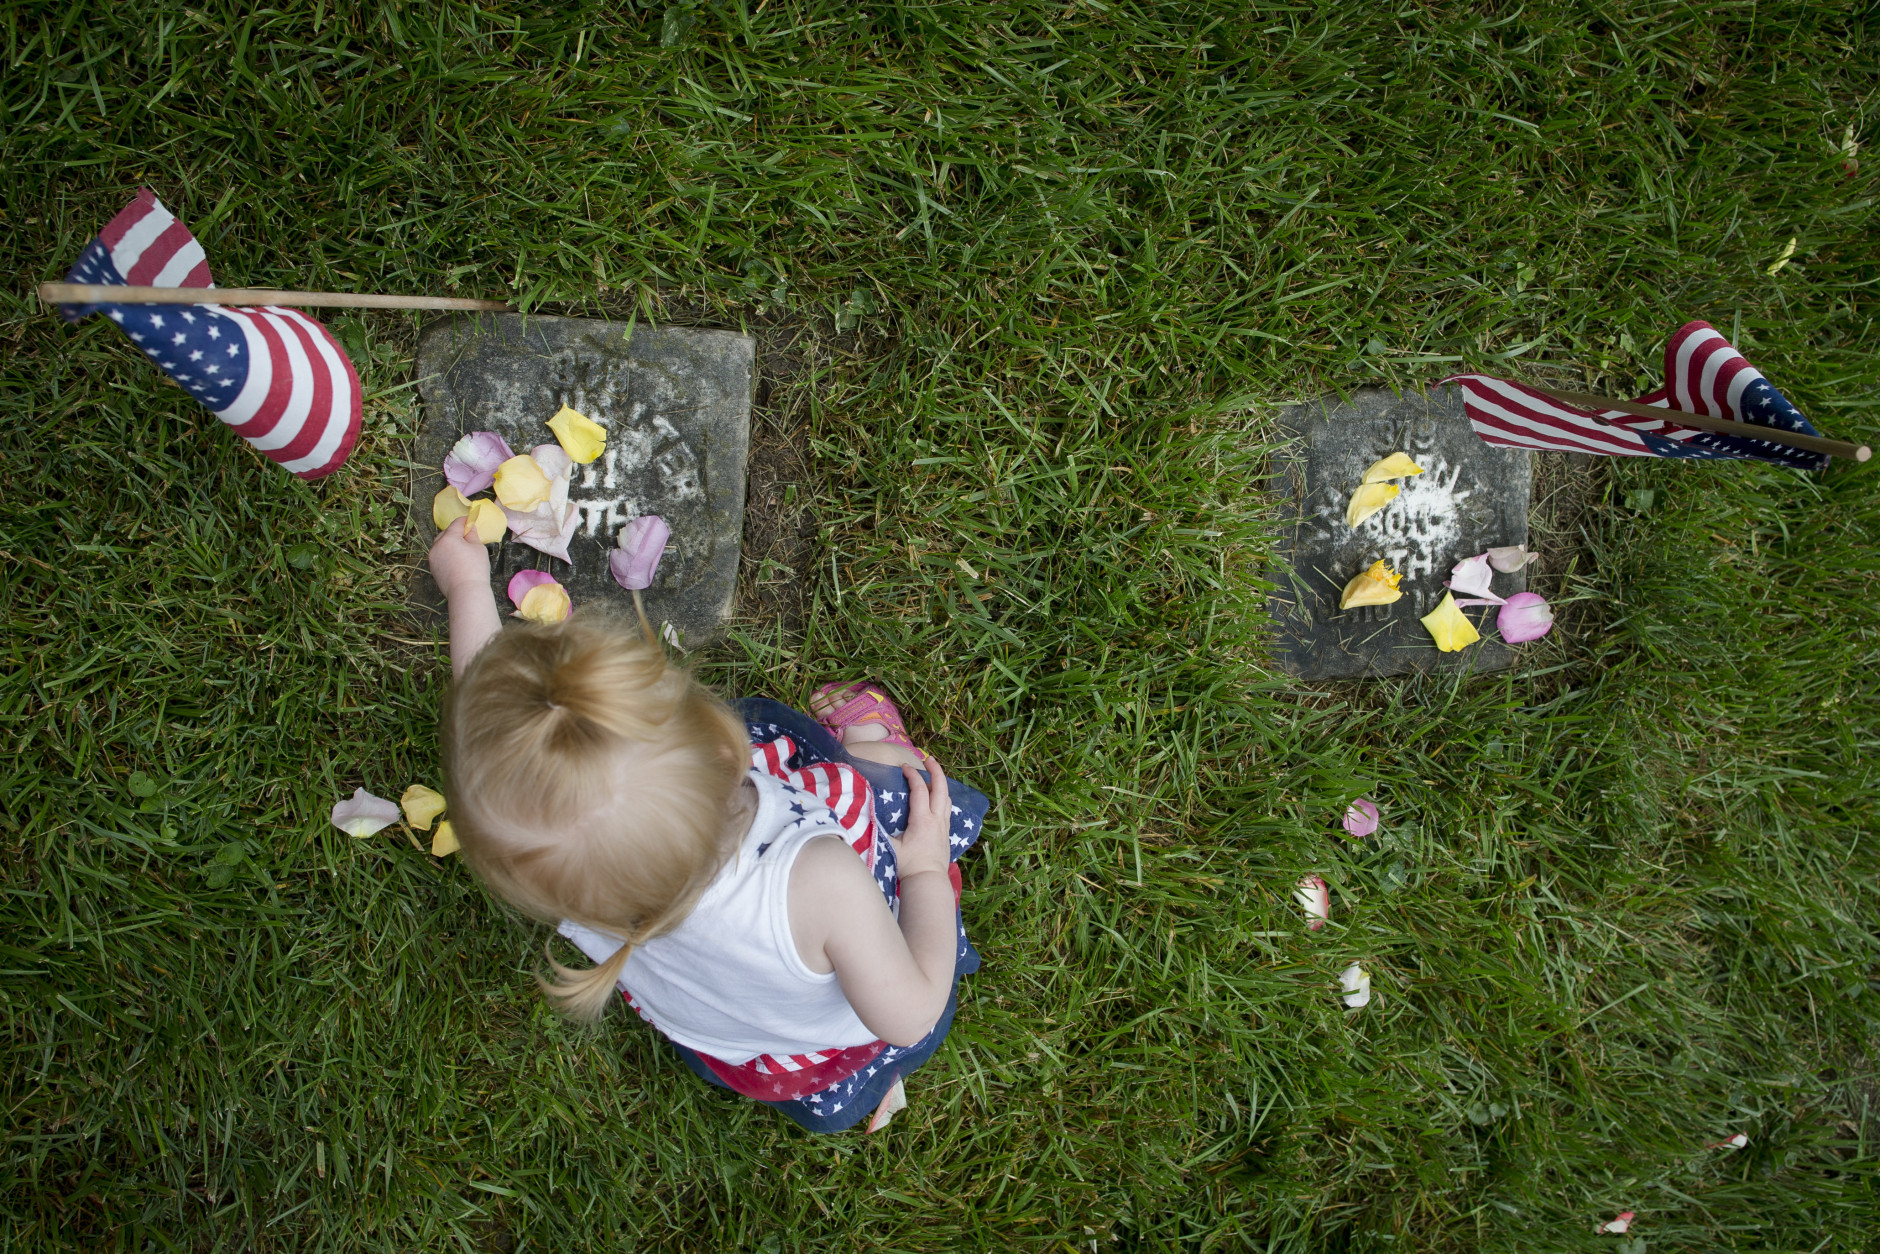 Brielle Nathon, of Lebanon, Ohio, places rose petals on the gravestone of a soldier who died in the Civil War, Monday, May 25, 2015, at Spring Grove Cemetery in Cincinnati. The cemetery is the final resting place of thousands of Civil War soldiers, both Union and Confederate. (AP Photo/John Minchillo)